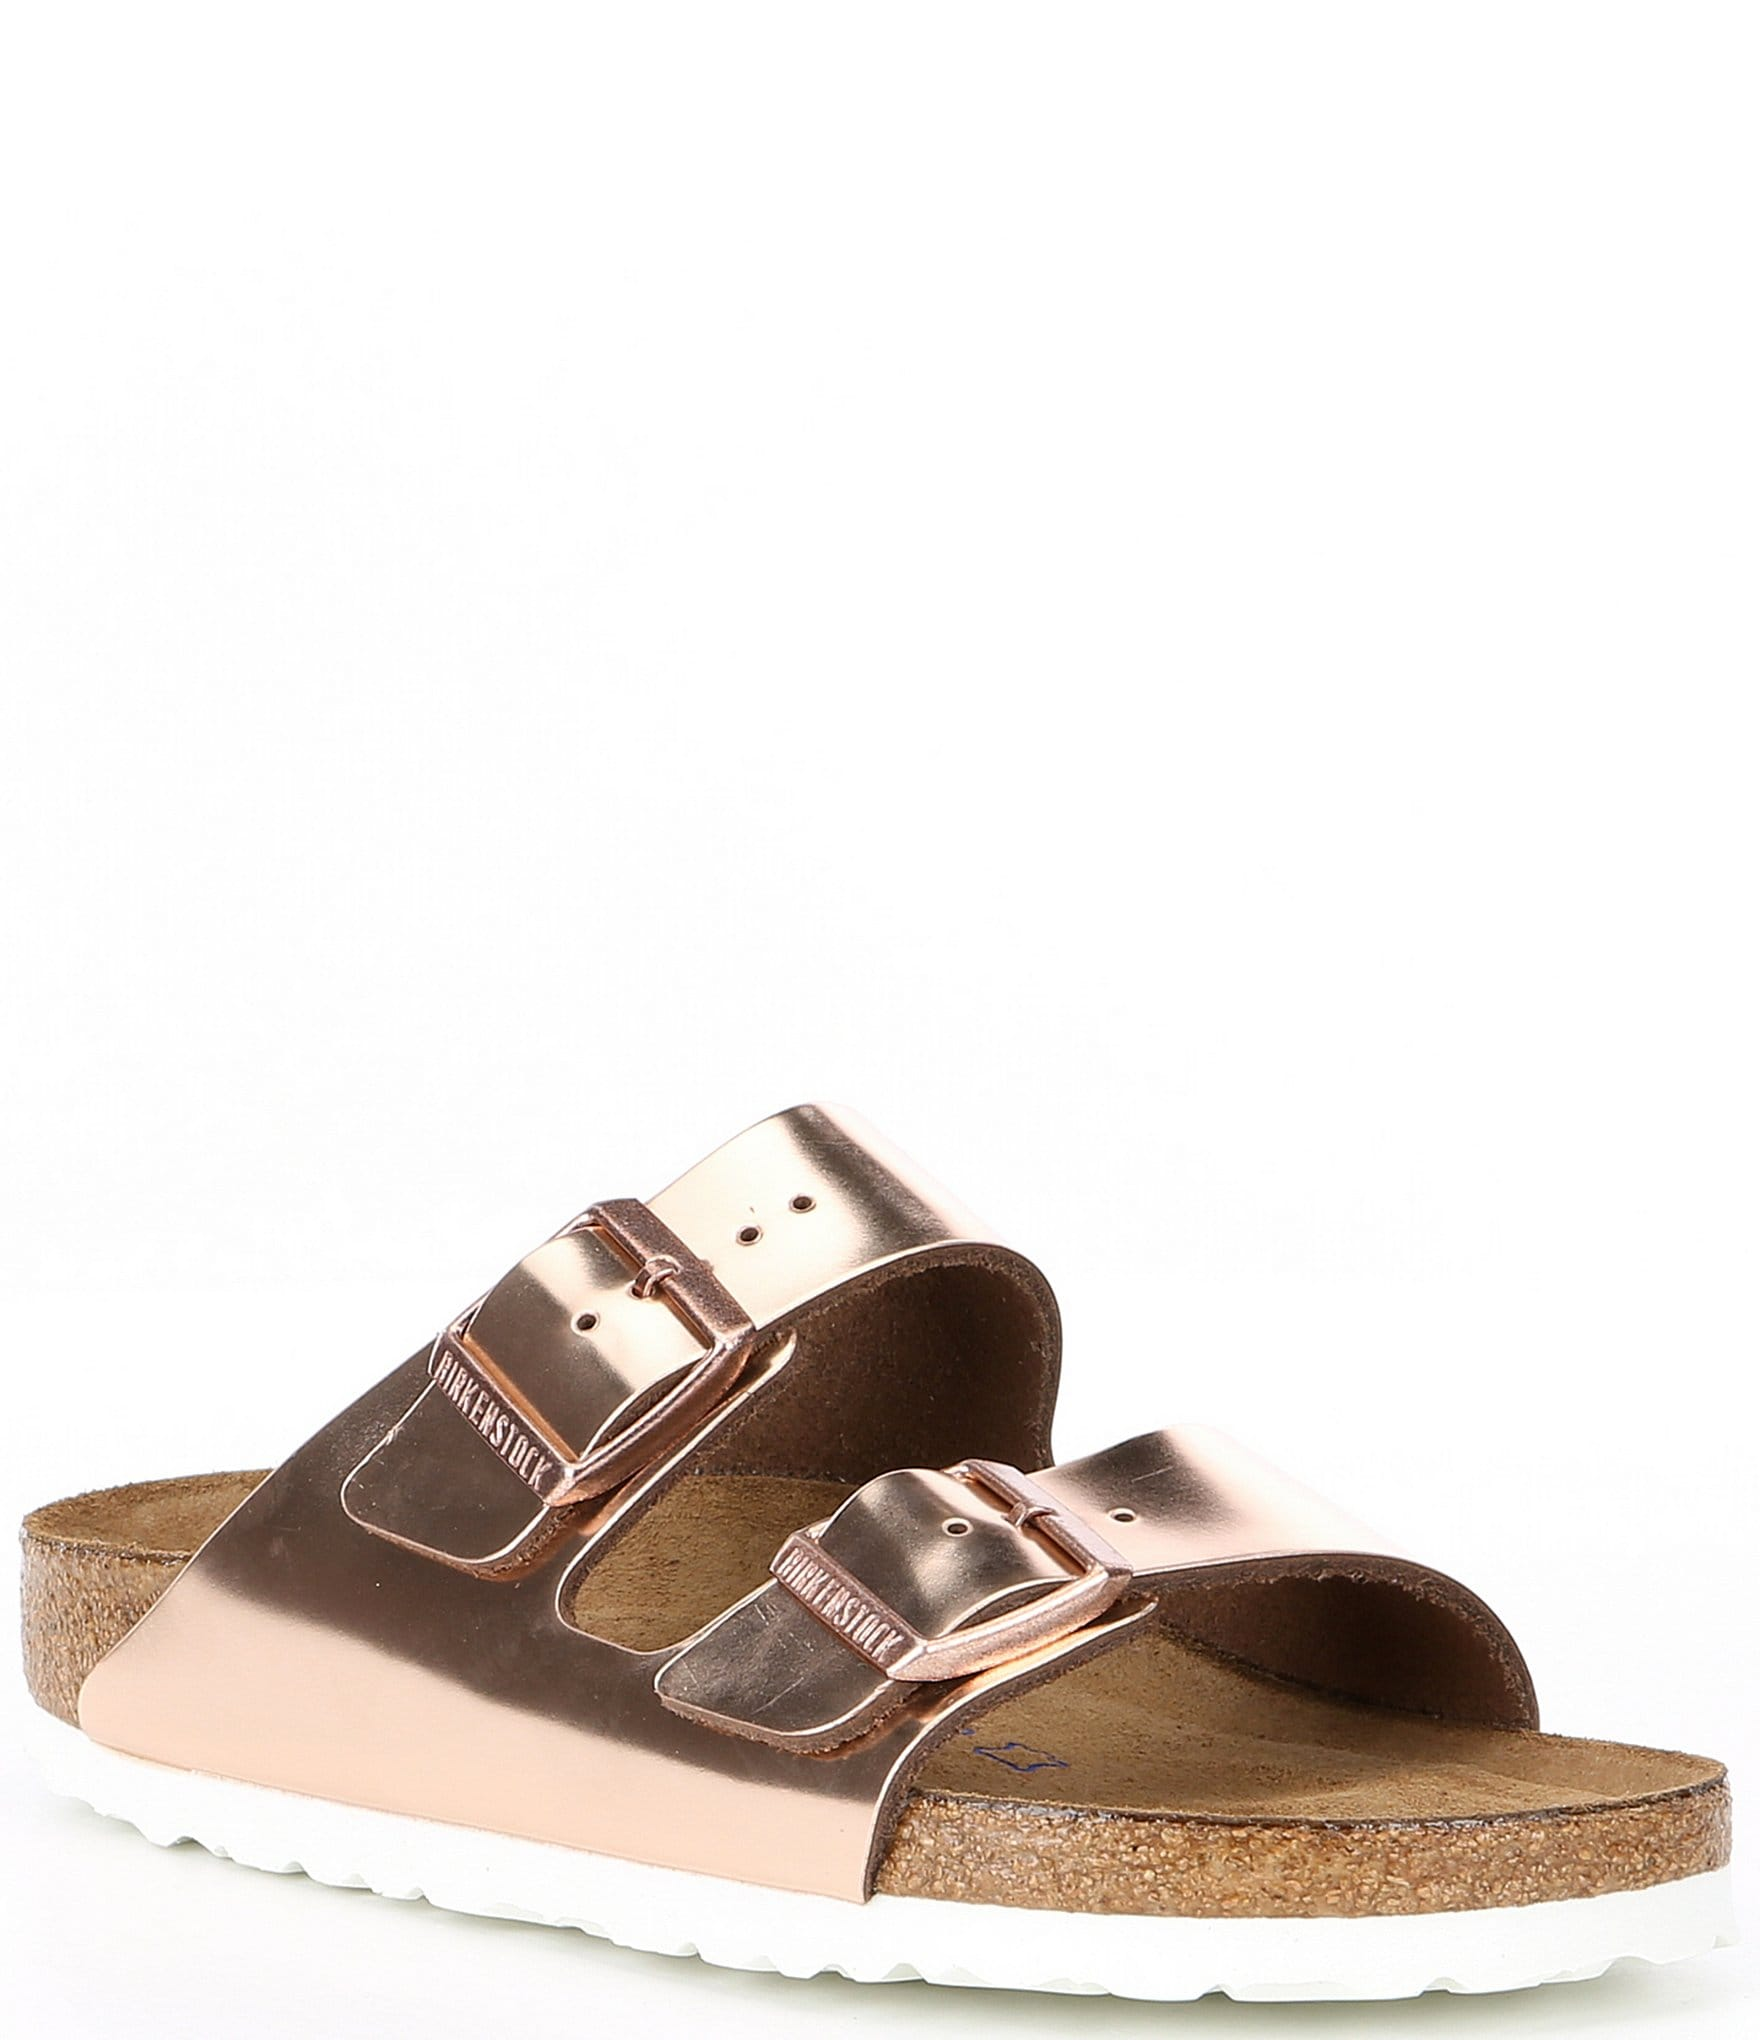 e3d714314 Women's Shoes | Dillard's